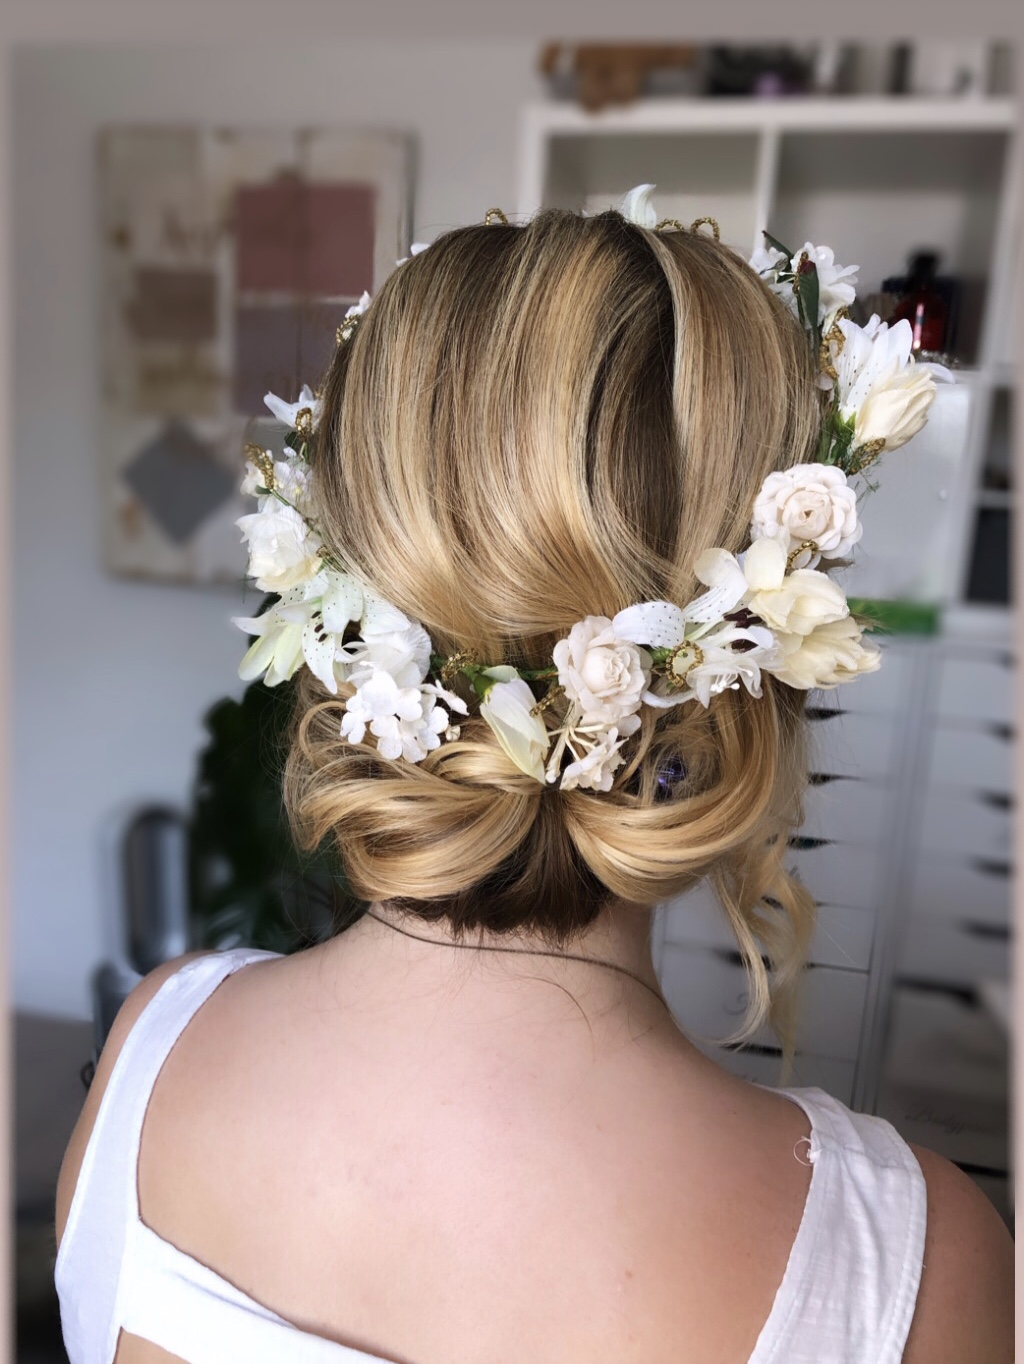 WEDDING HAIR STYLIST LONDON